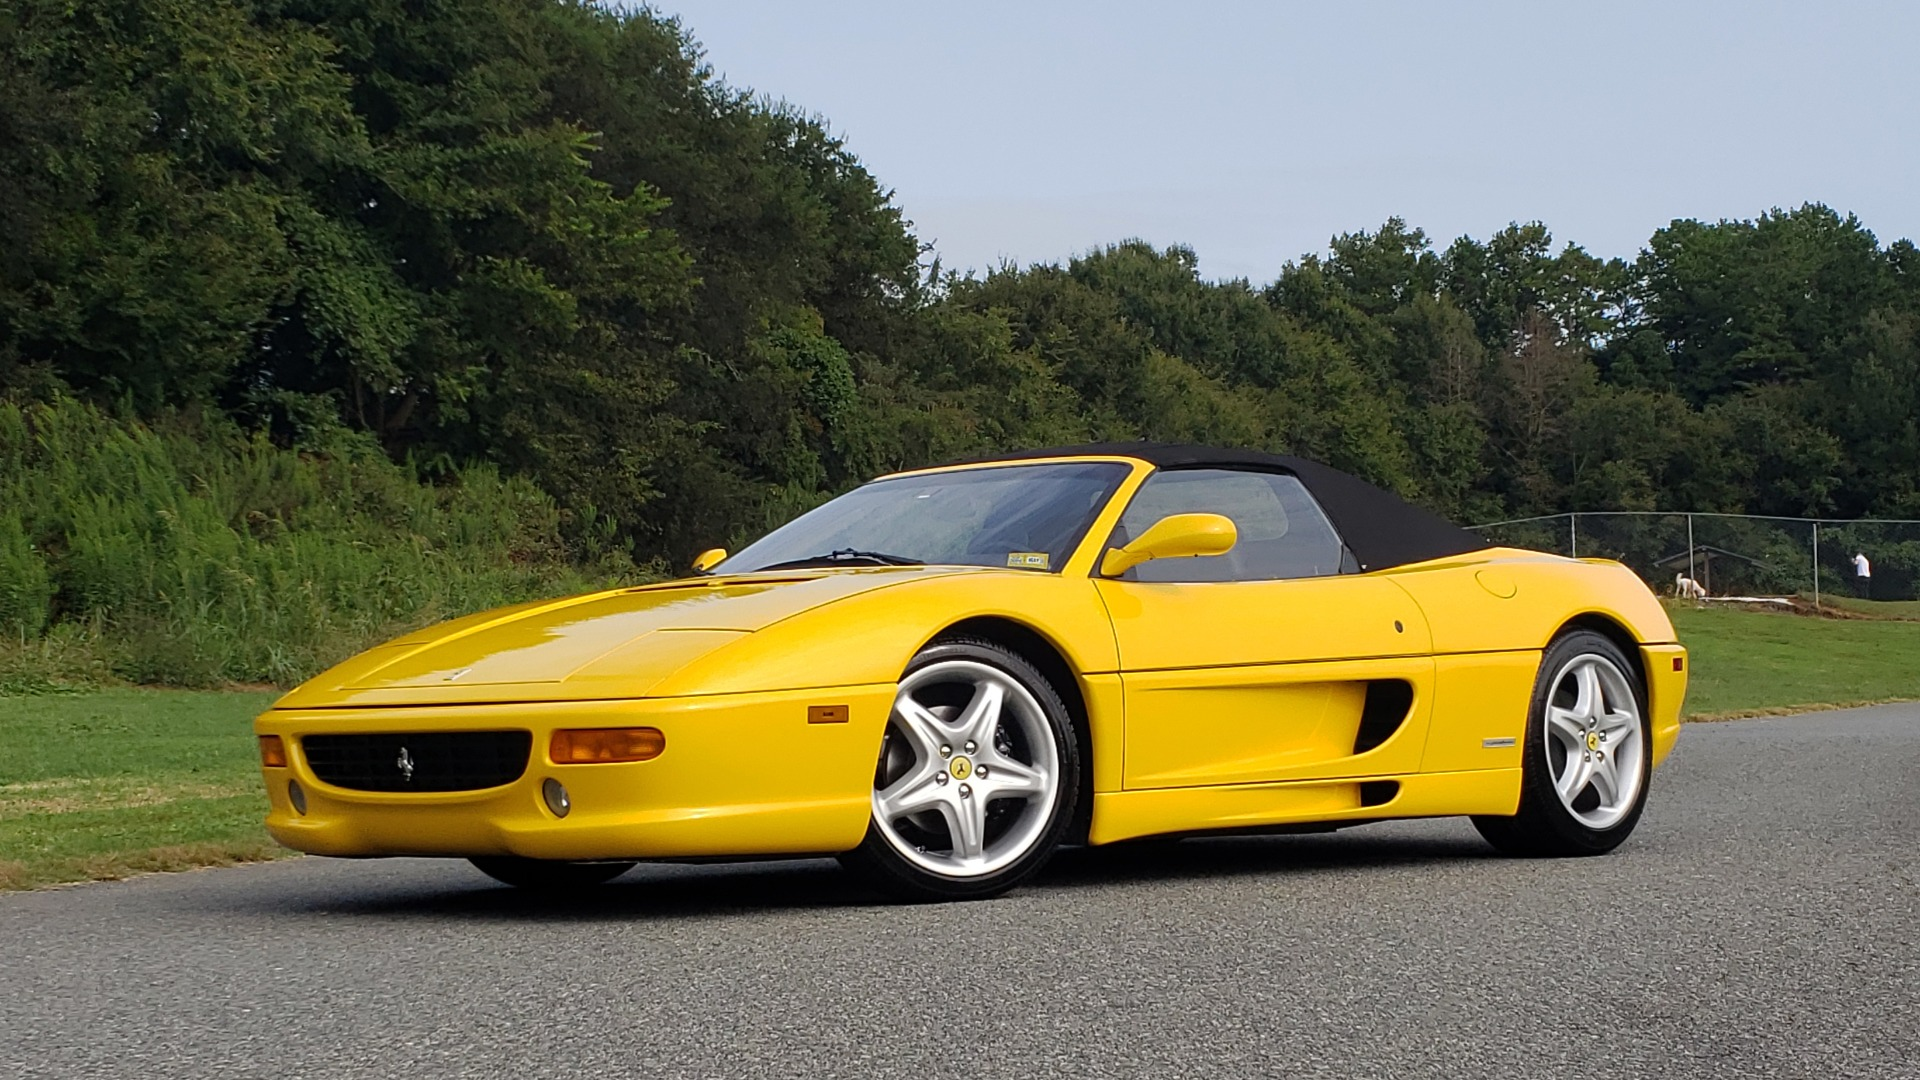 Used 1996 Ferrari F355 SPIDER / GATED 6-SPEED MANUAL / LOW MILES / NEW TIRES for sale $95,999 at Formula Imports in Charlotte NC 28227 2